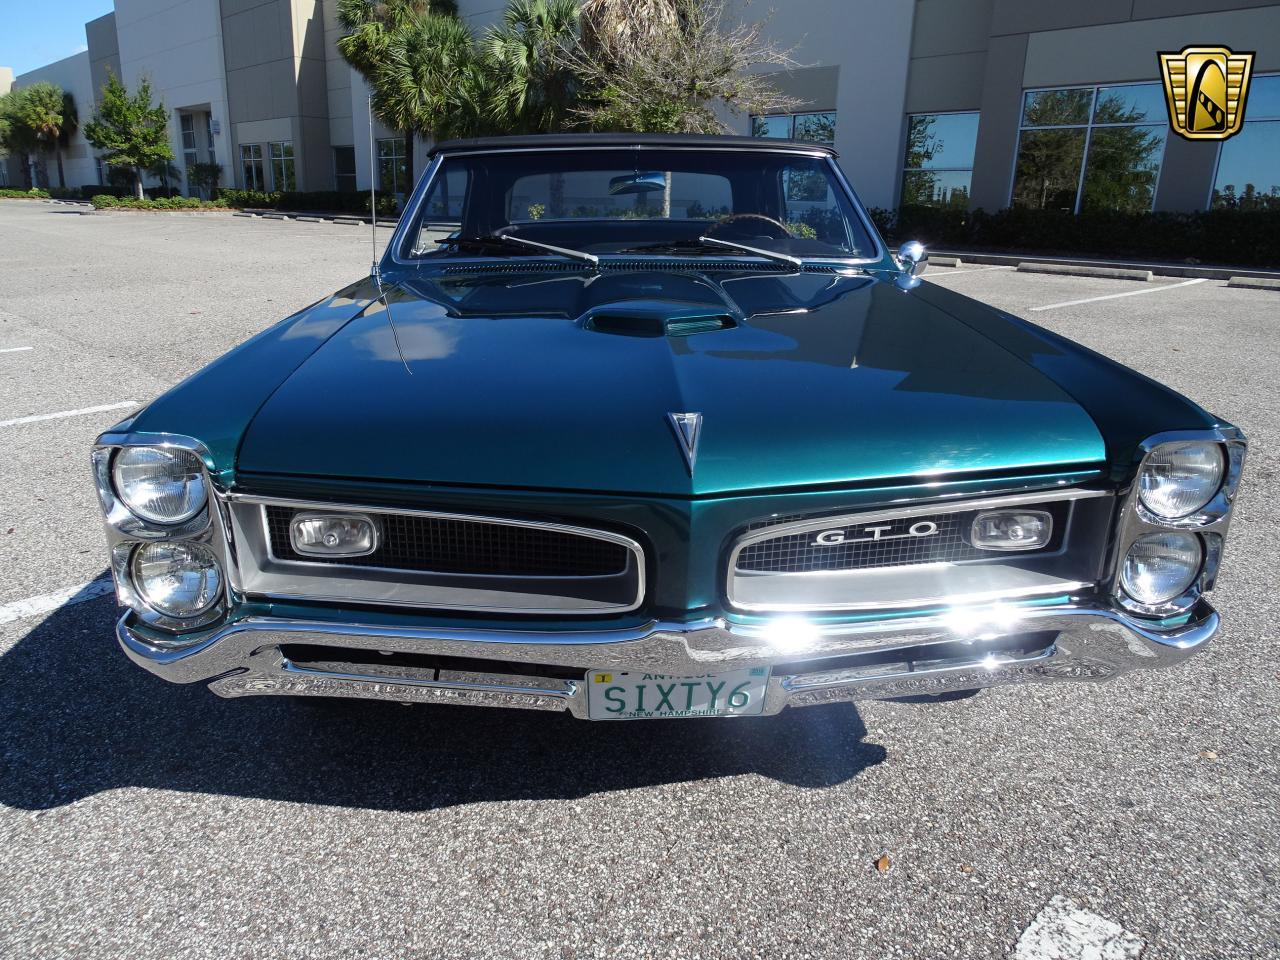 Large Picture of 1966 Pontiac GTO - $59,000.00 Offered by Gateway Classic Cars - Tampa - MF43